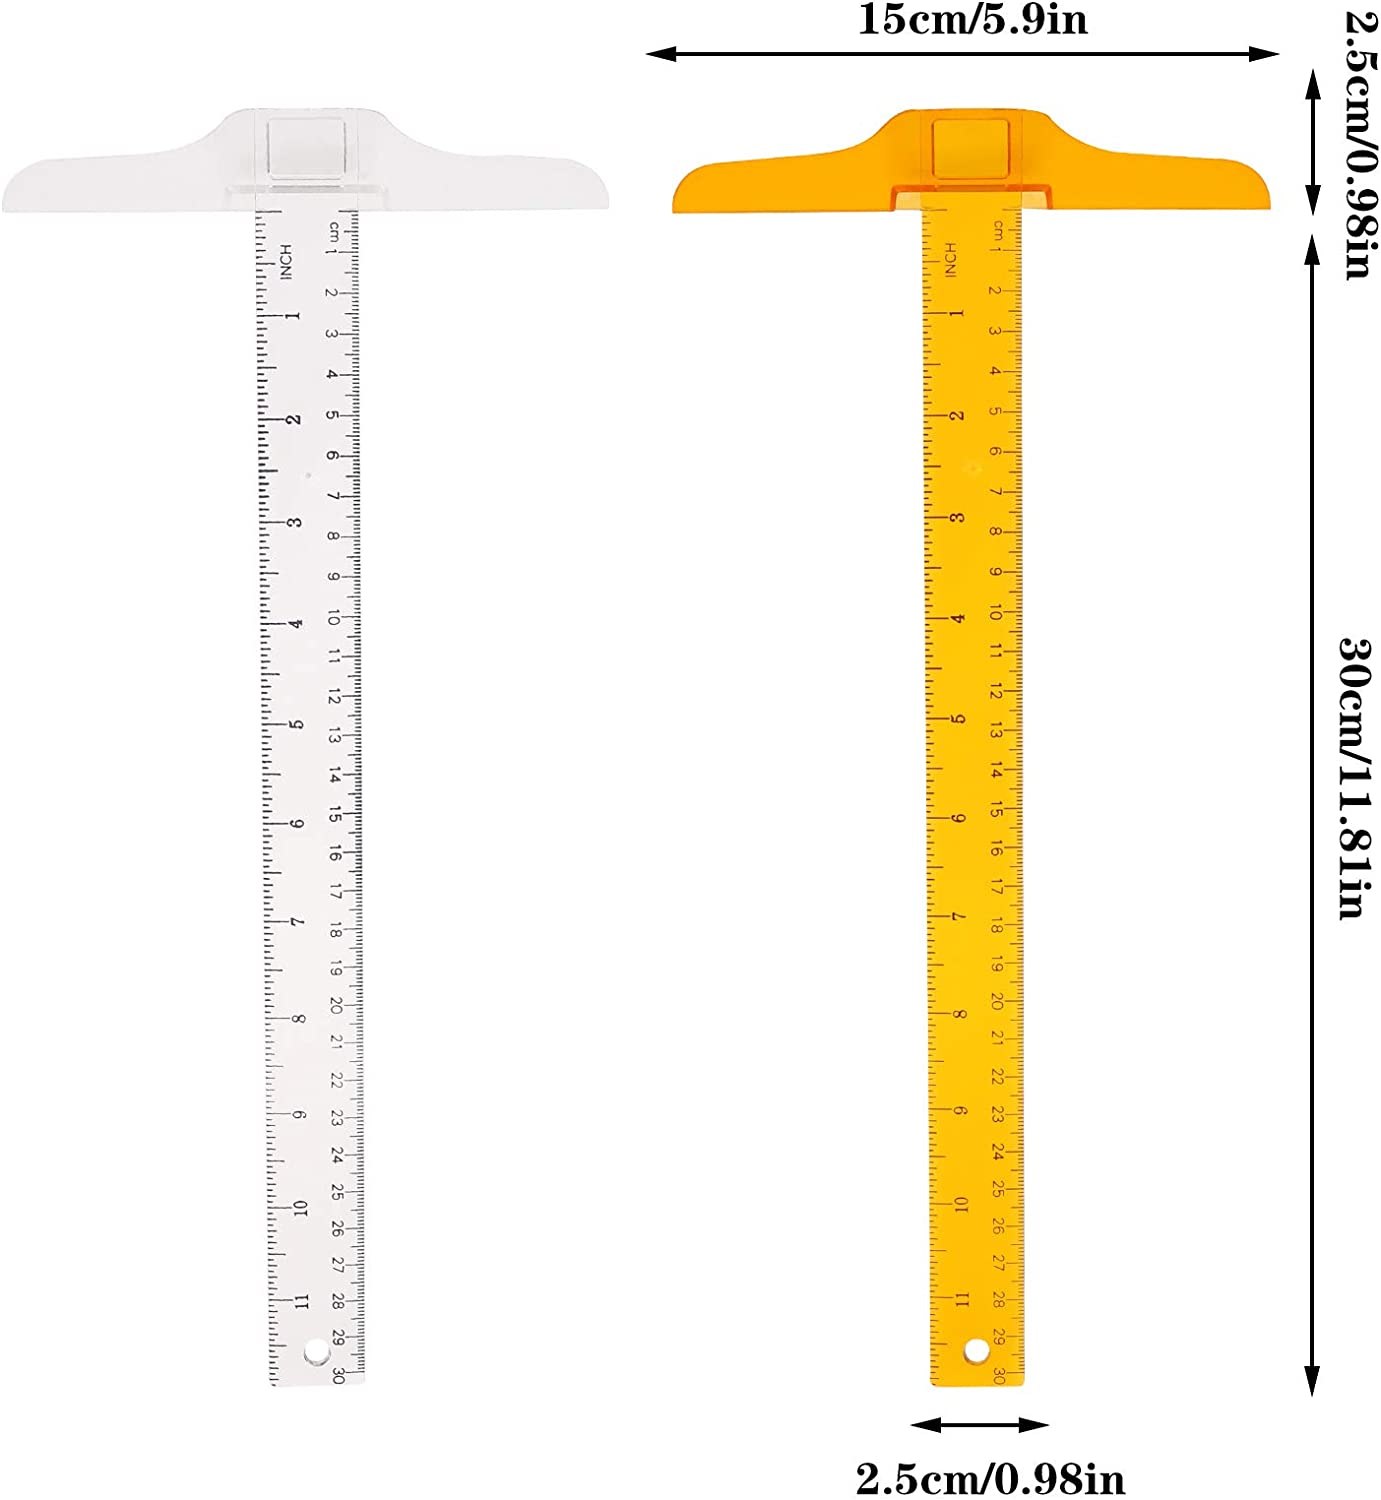 Orange 12 Inch// 30 cm T Shape Ruler Plastic Transparent T-Ruler Junior T-Square Academic T-Ruler for Drafting and General Layout Work Xinzistar 4 Pcs T-Square